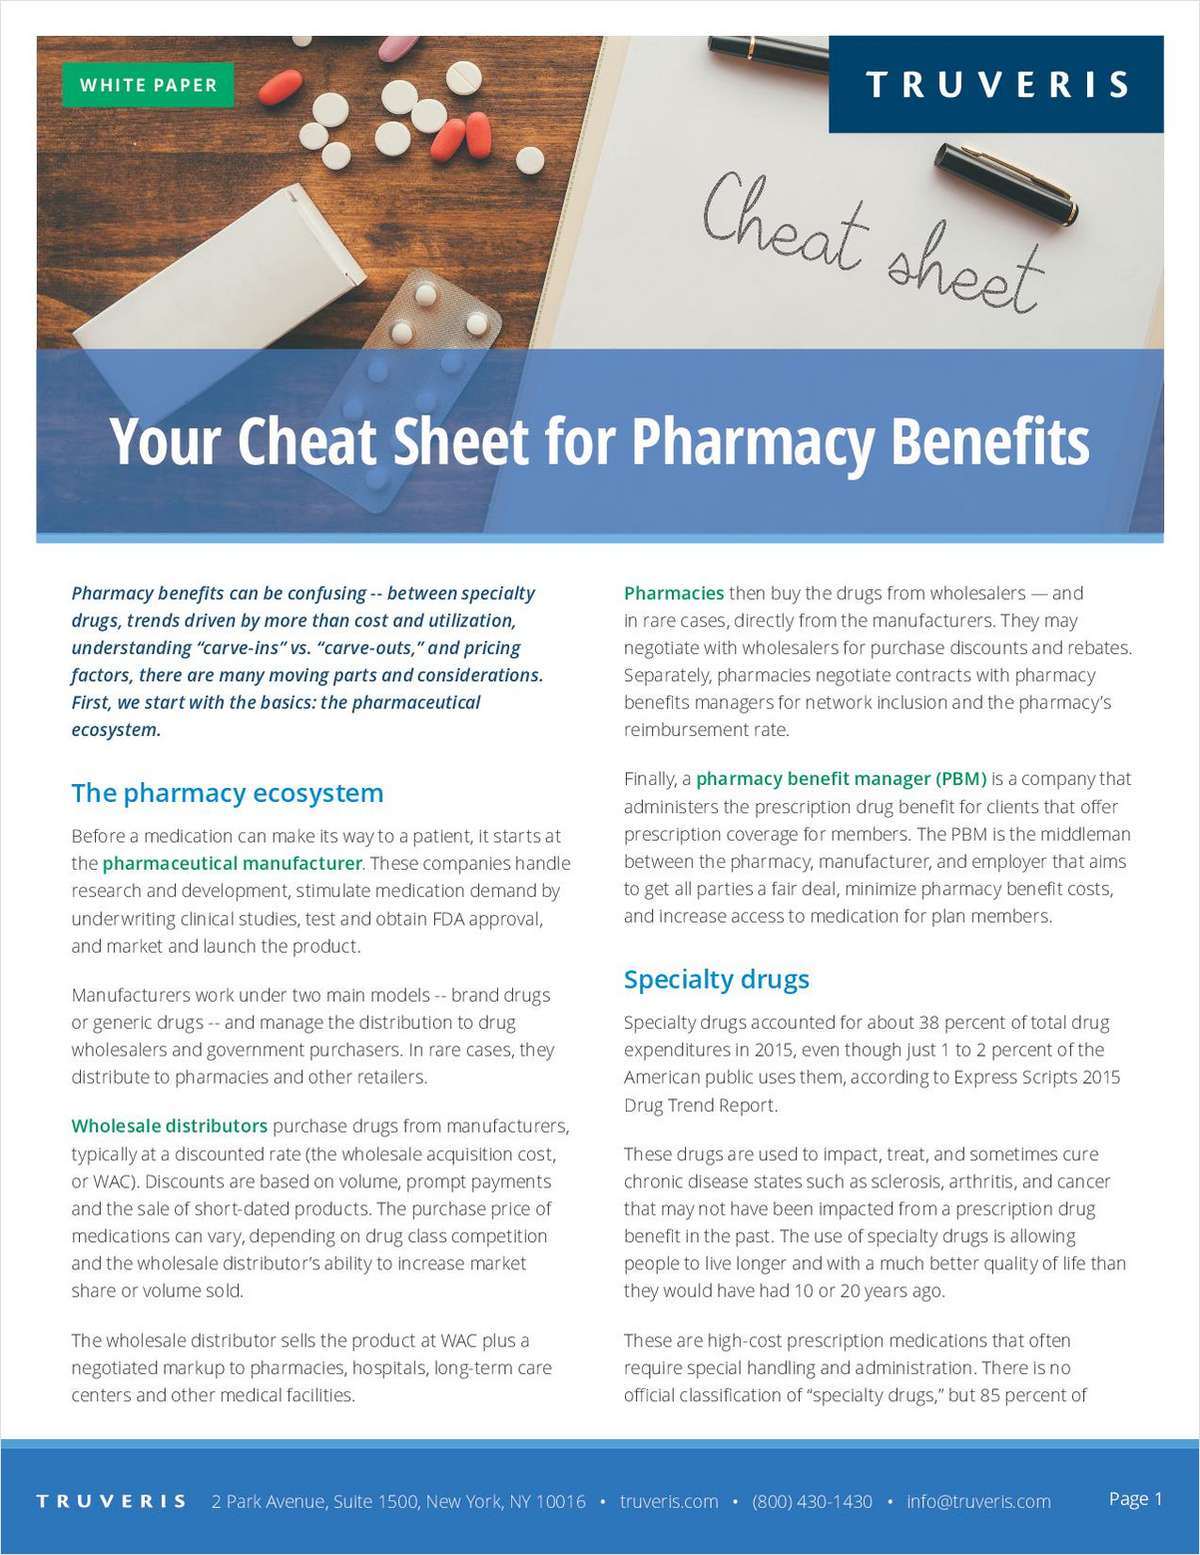 Your Cheat Sheet for Pharmacy Benefits